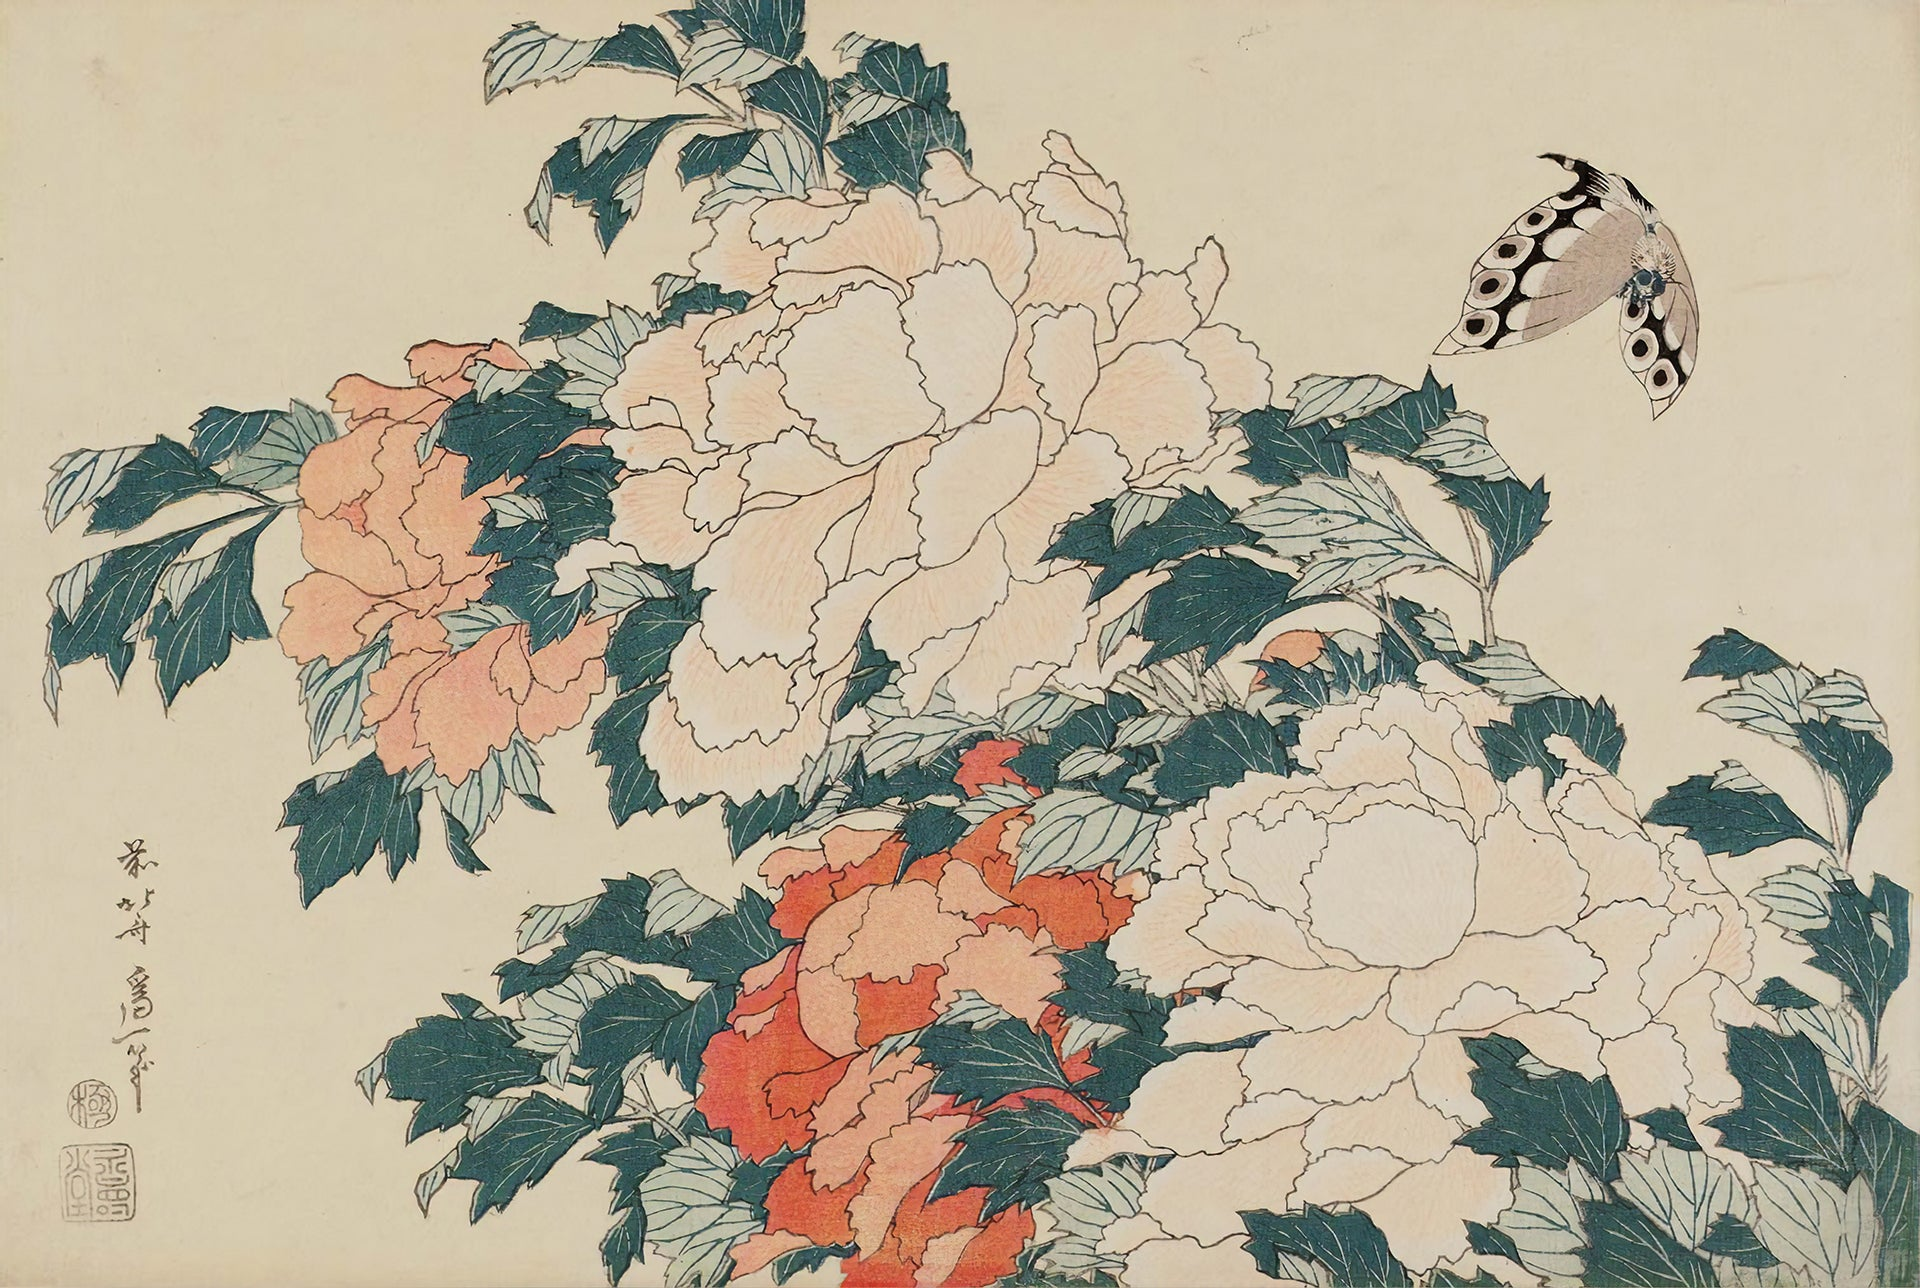 Peonies and Butterfly (1830-1831) by Hokusai